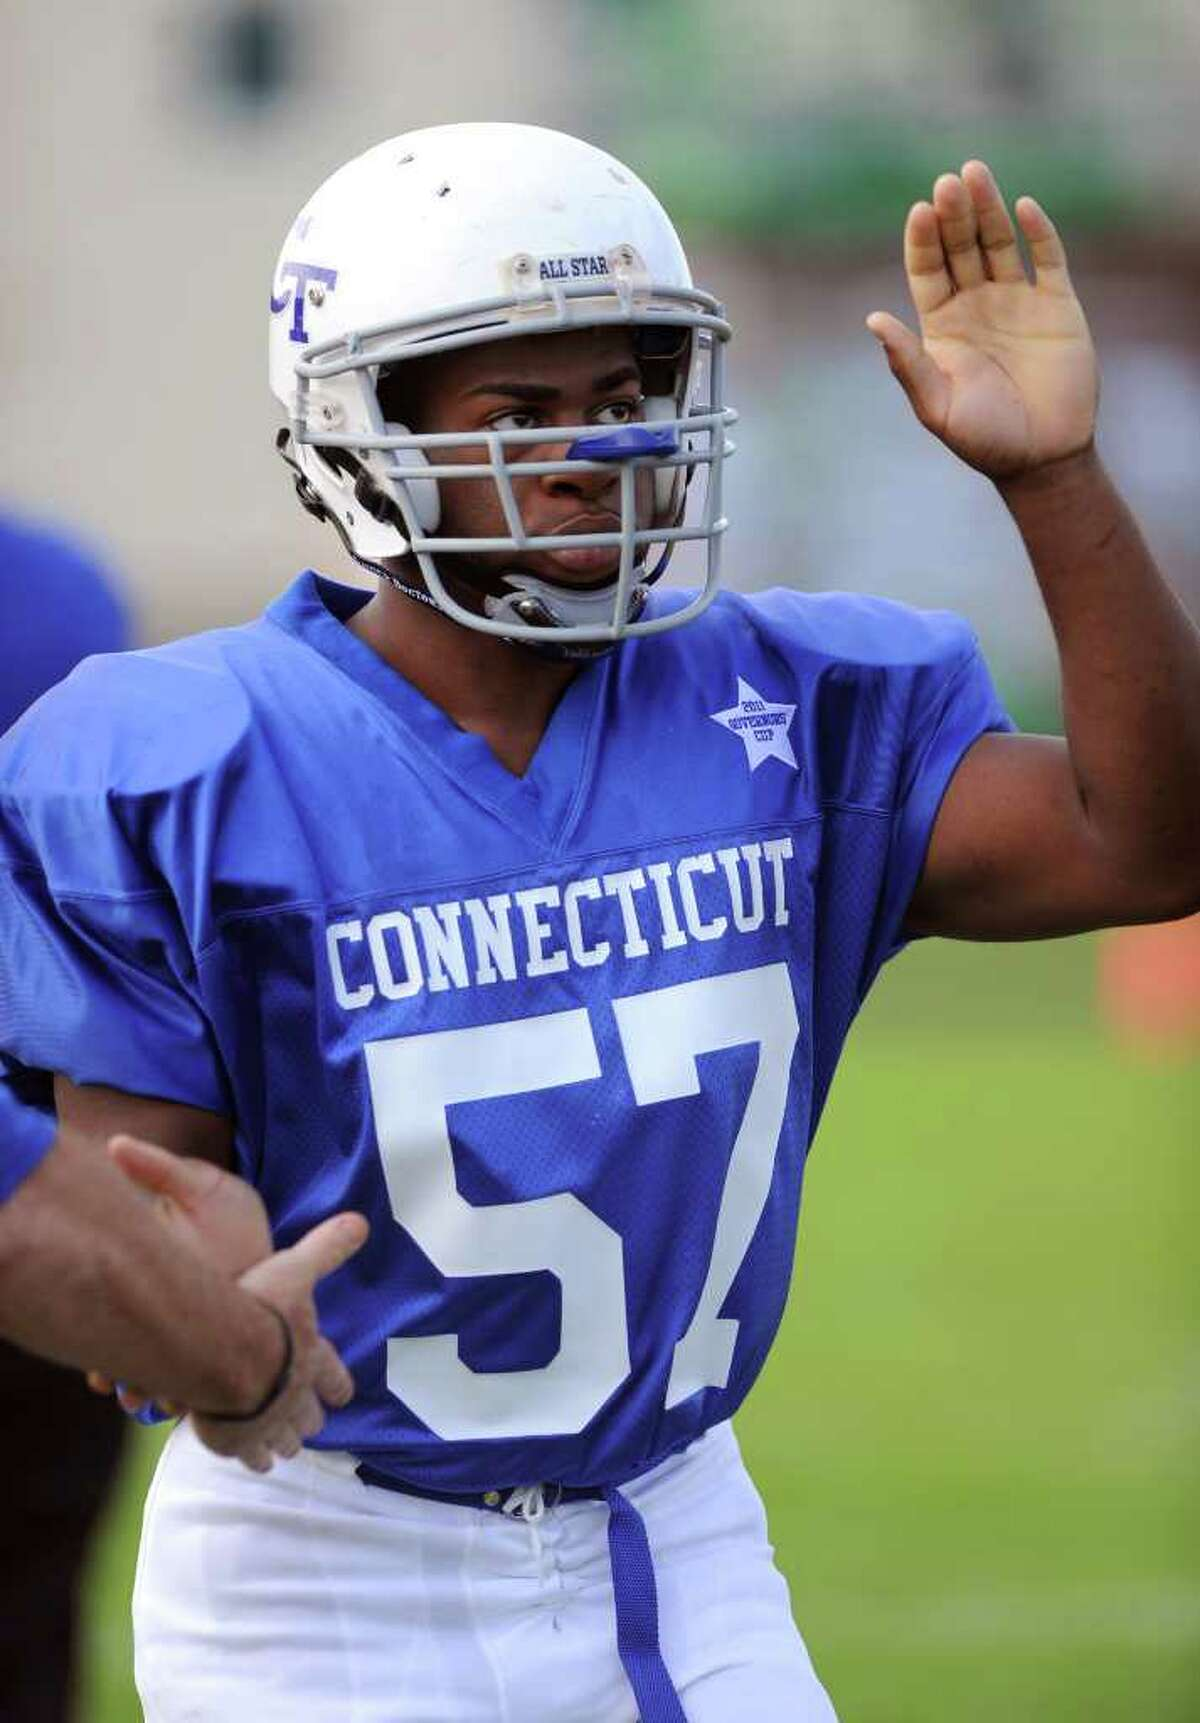 Stamford High School's Mark Robinson enters the field for the Connecticut High School football all-star game against Rhode Island on June 25, 2011, at Southington High School.